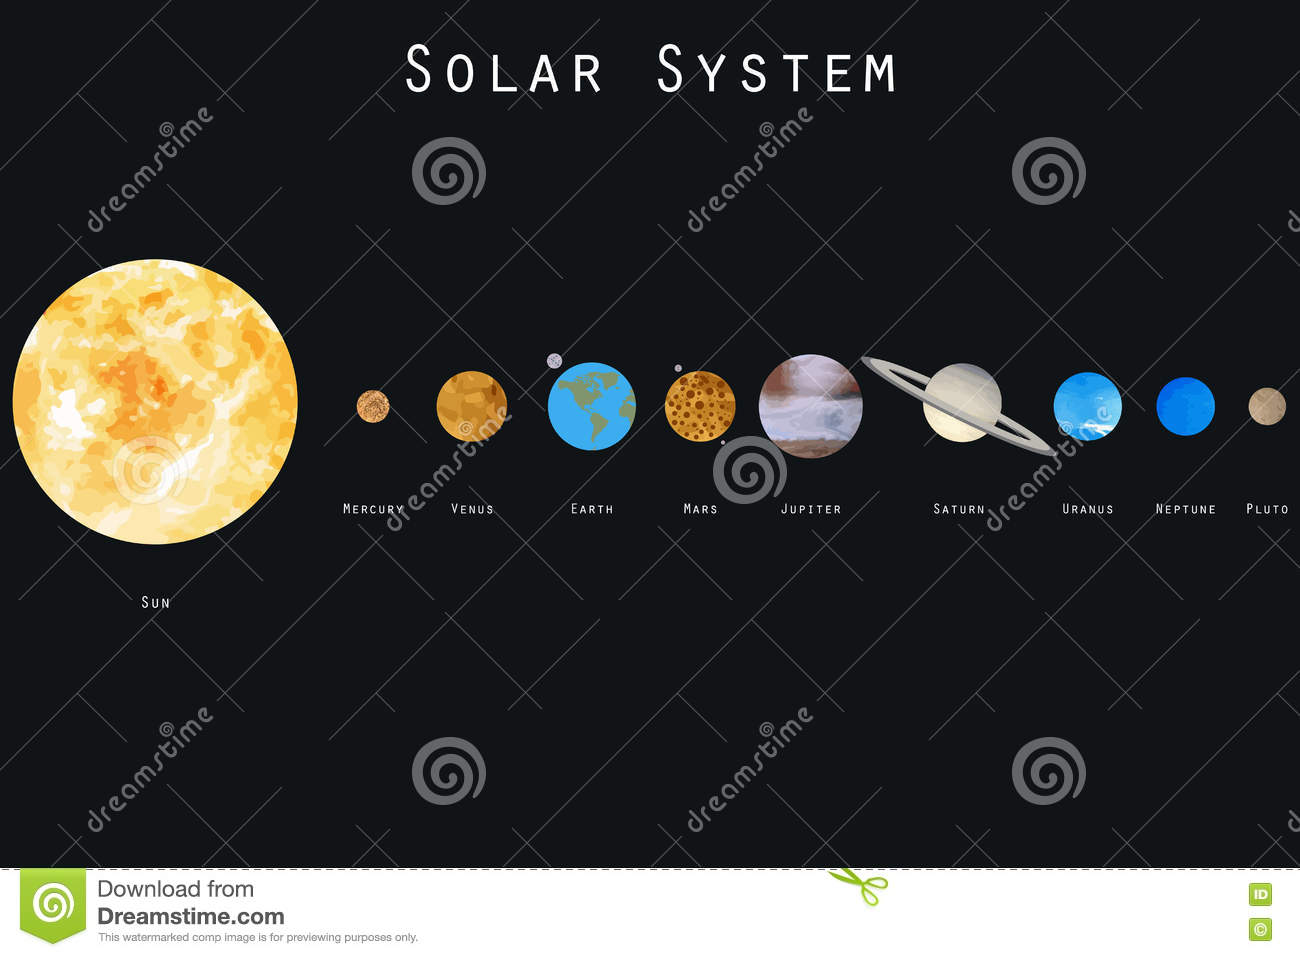 solar system vector free download - photo #9